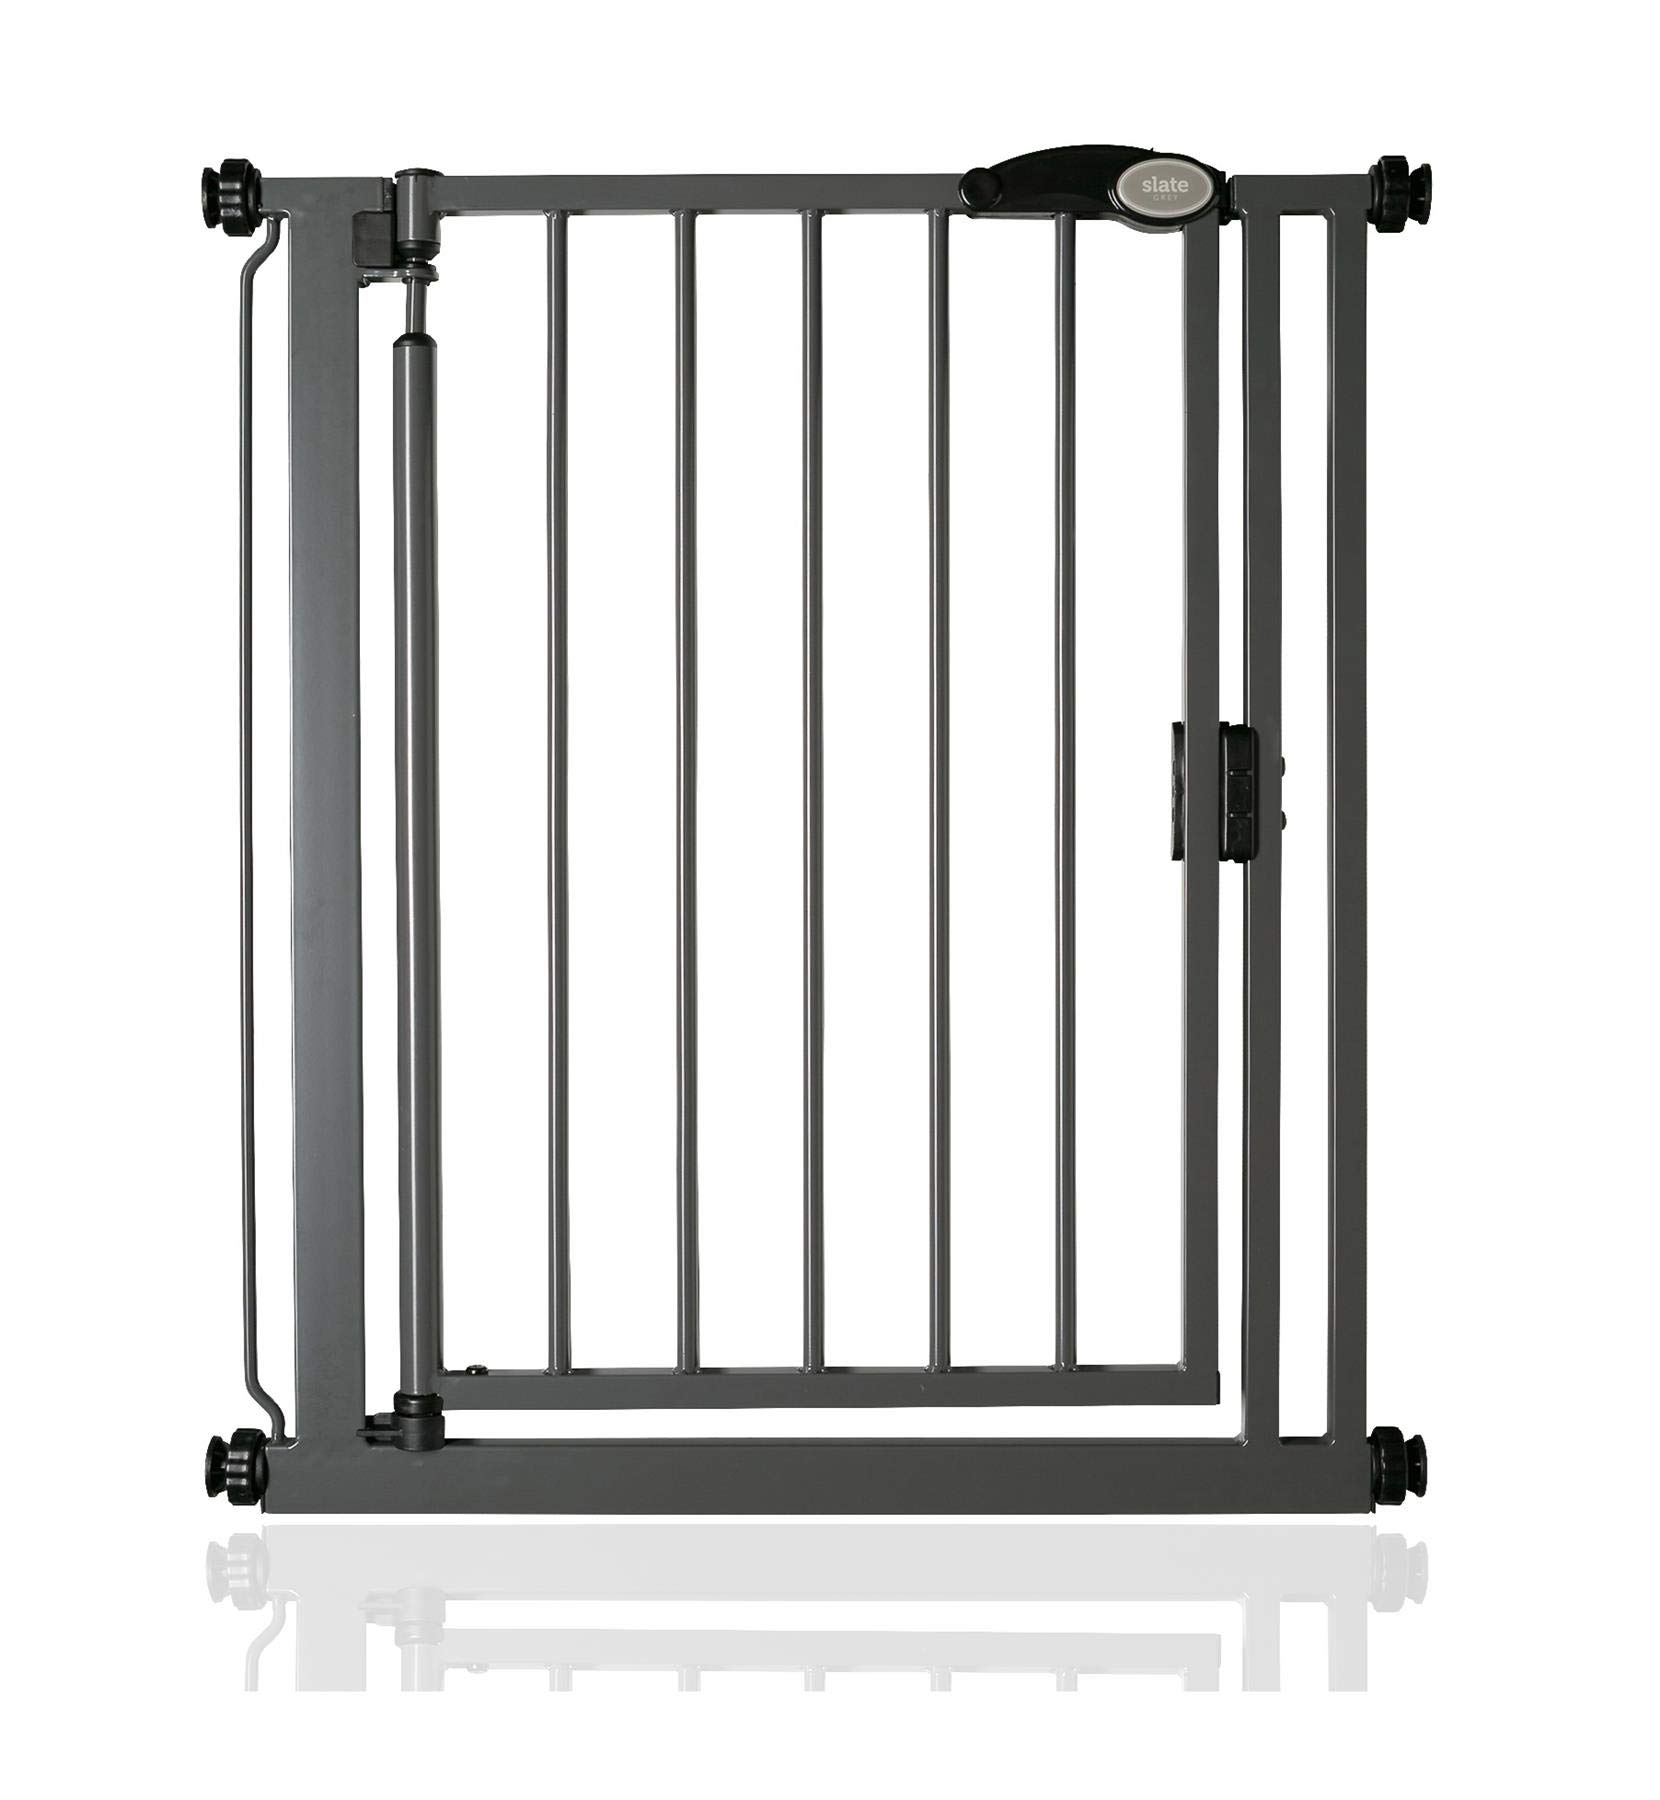 Safetots Pressure Fit Self Closing Gate Range (68.5cm - 75cm, Slate Grey) Safetots Self closing - gate closes slowly behind you Two way opening (widget on bottom bar can be adjusted to set gate opening towards or from user) Height: 75.5cm 1